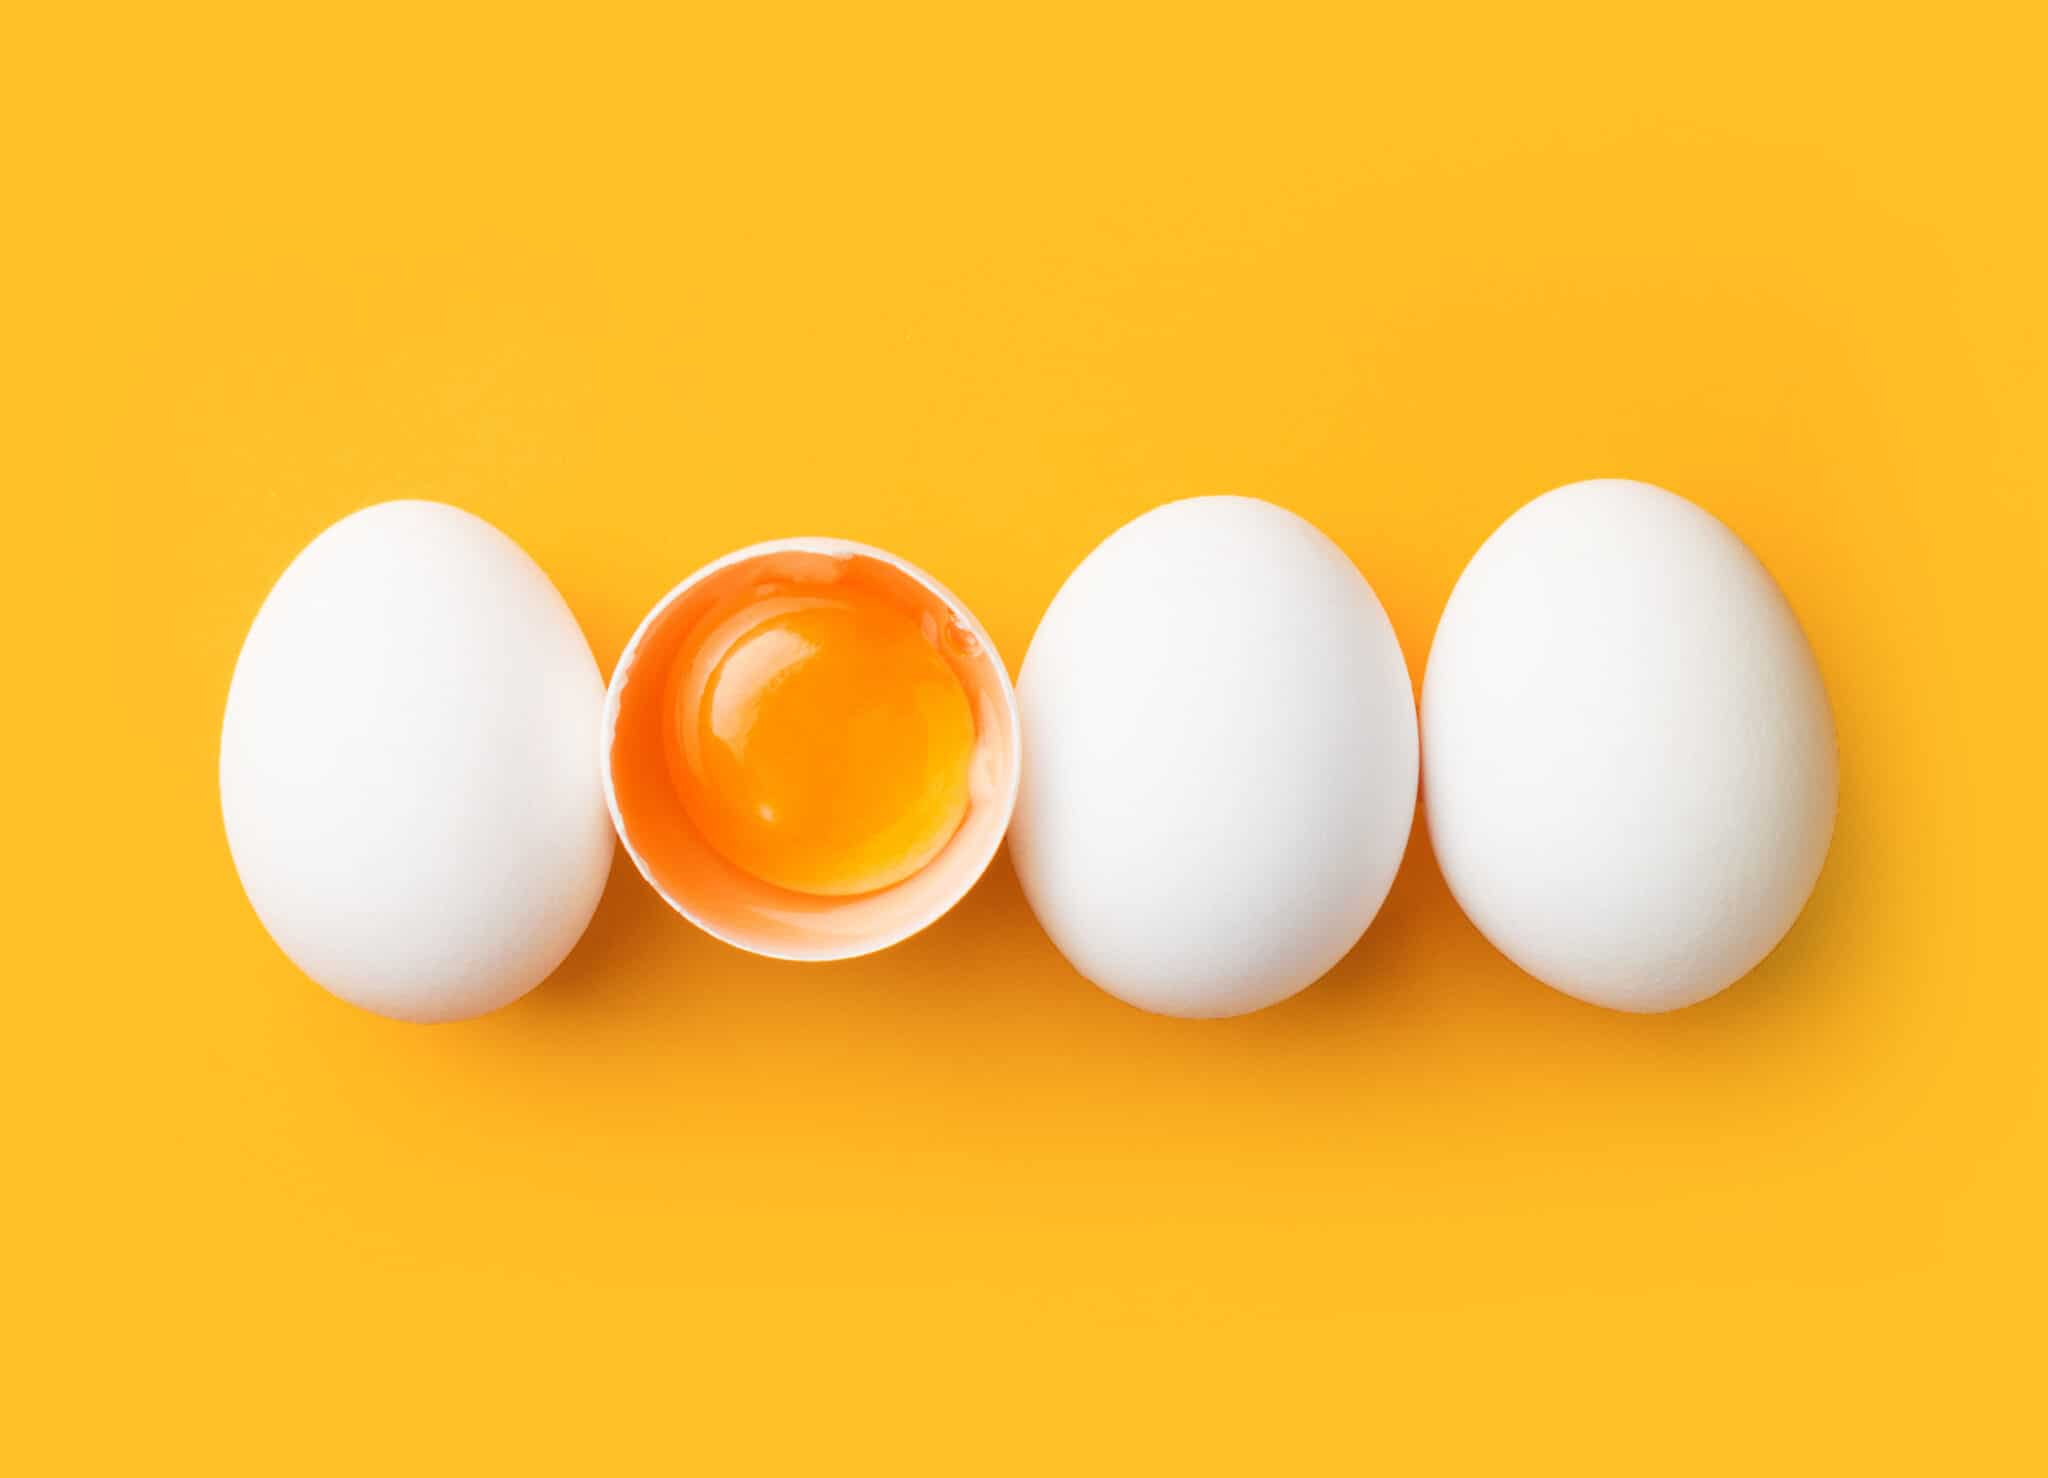 Egg yolk in egg shell with 3 other eggs